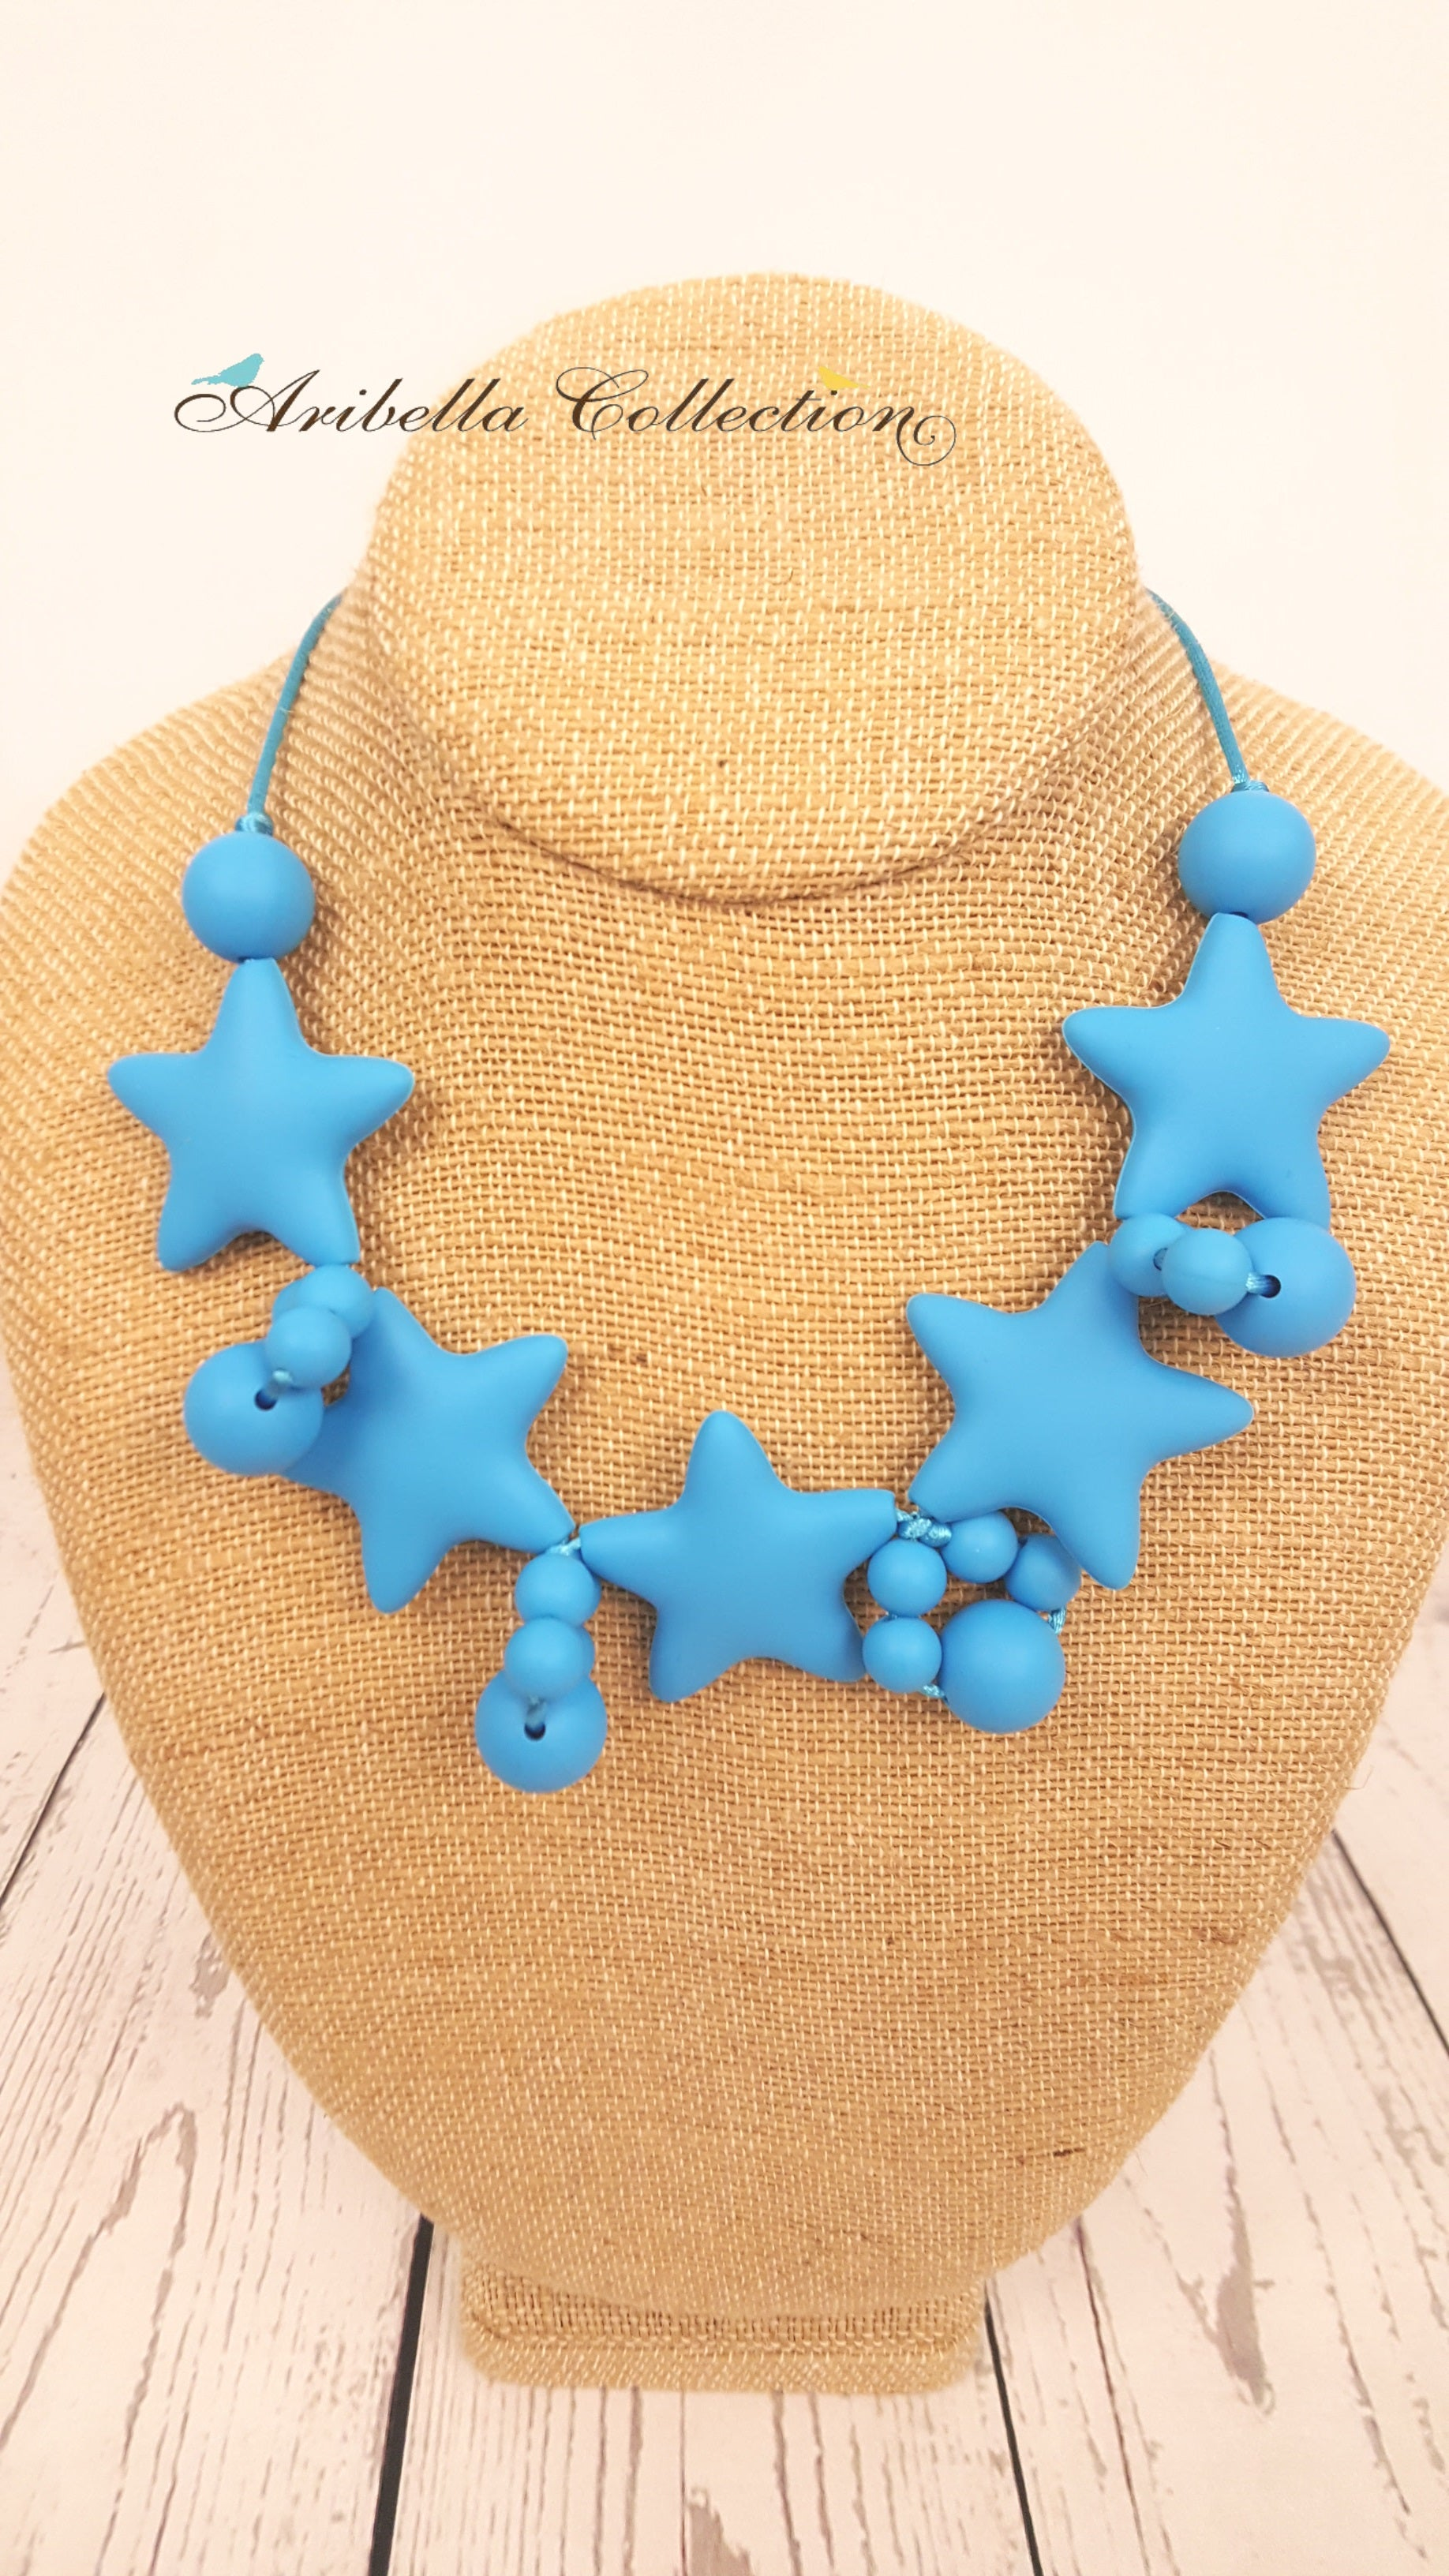 Silicone Necklace - Blue Star - Aribella Collection